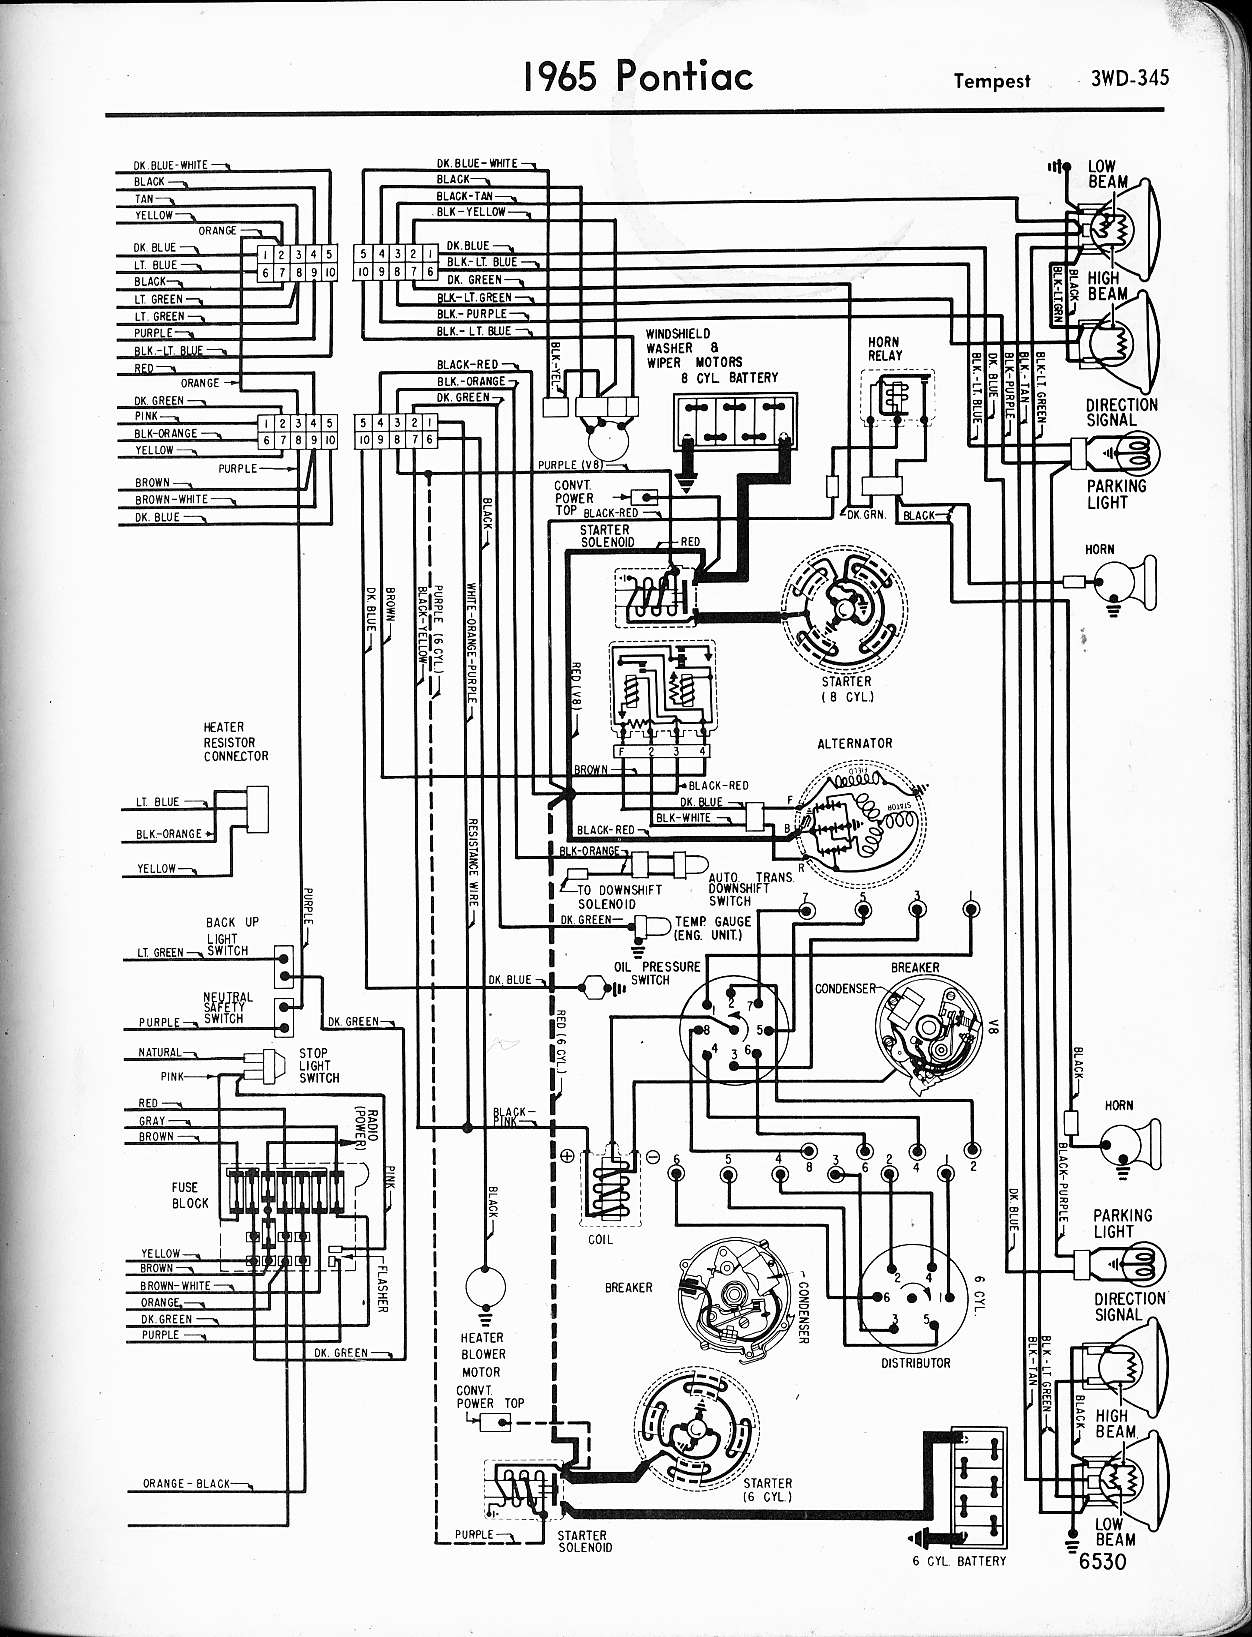 MWire5765 345 wiring diagram pontiac the wiring diagram readingrat net pontiac hood tach wiring diagram at edmiracle.co